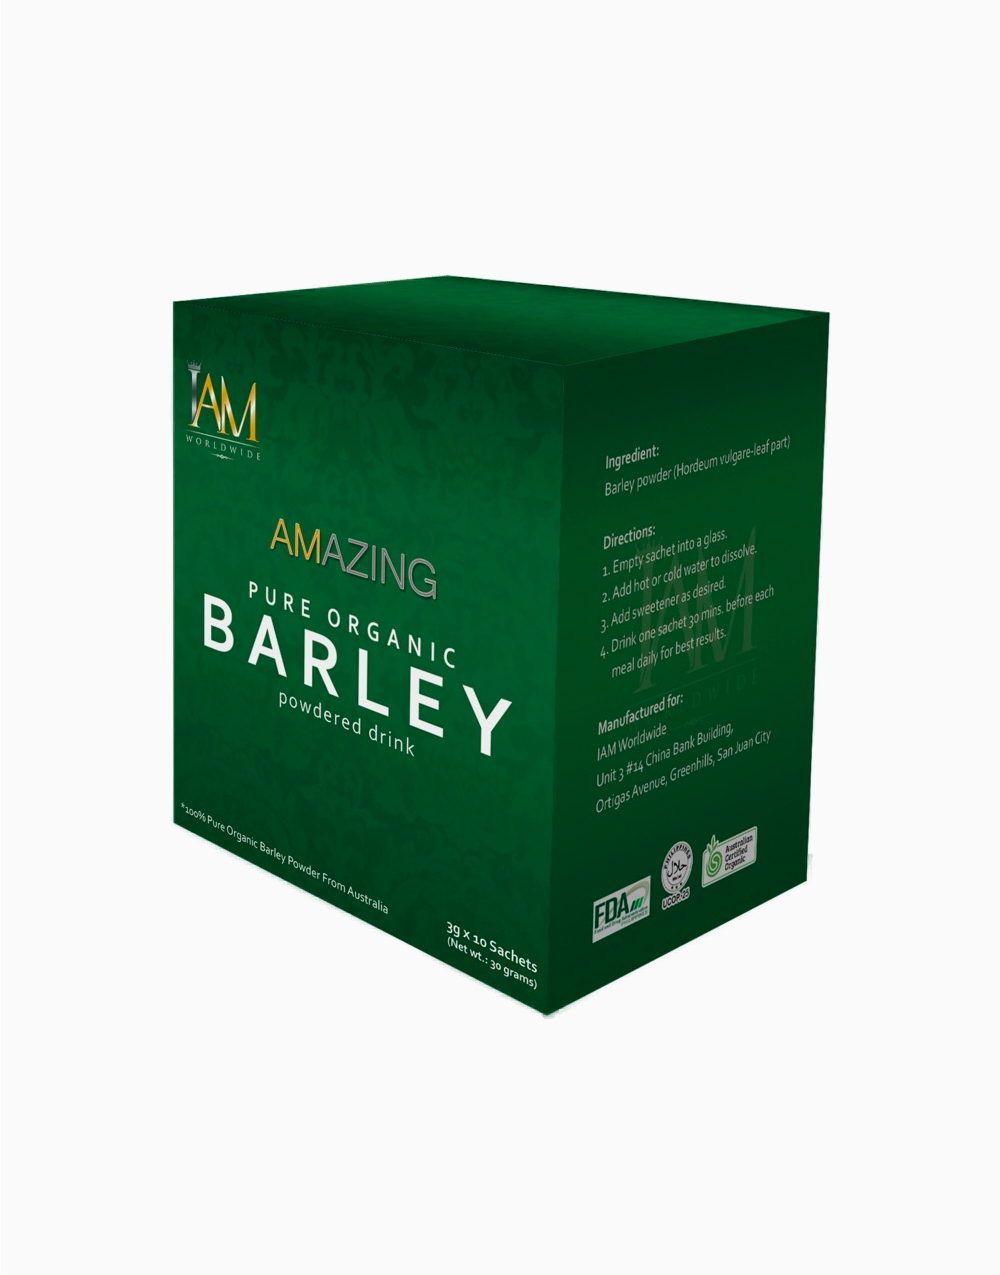 Pure Organic Barley Powdered Drink (10 Sachets) by iAMWorldwide